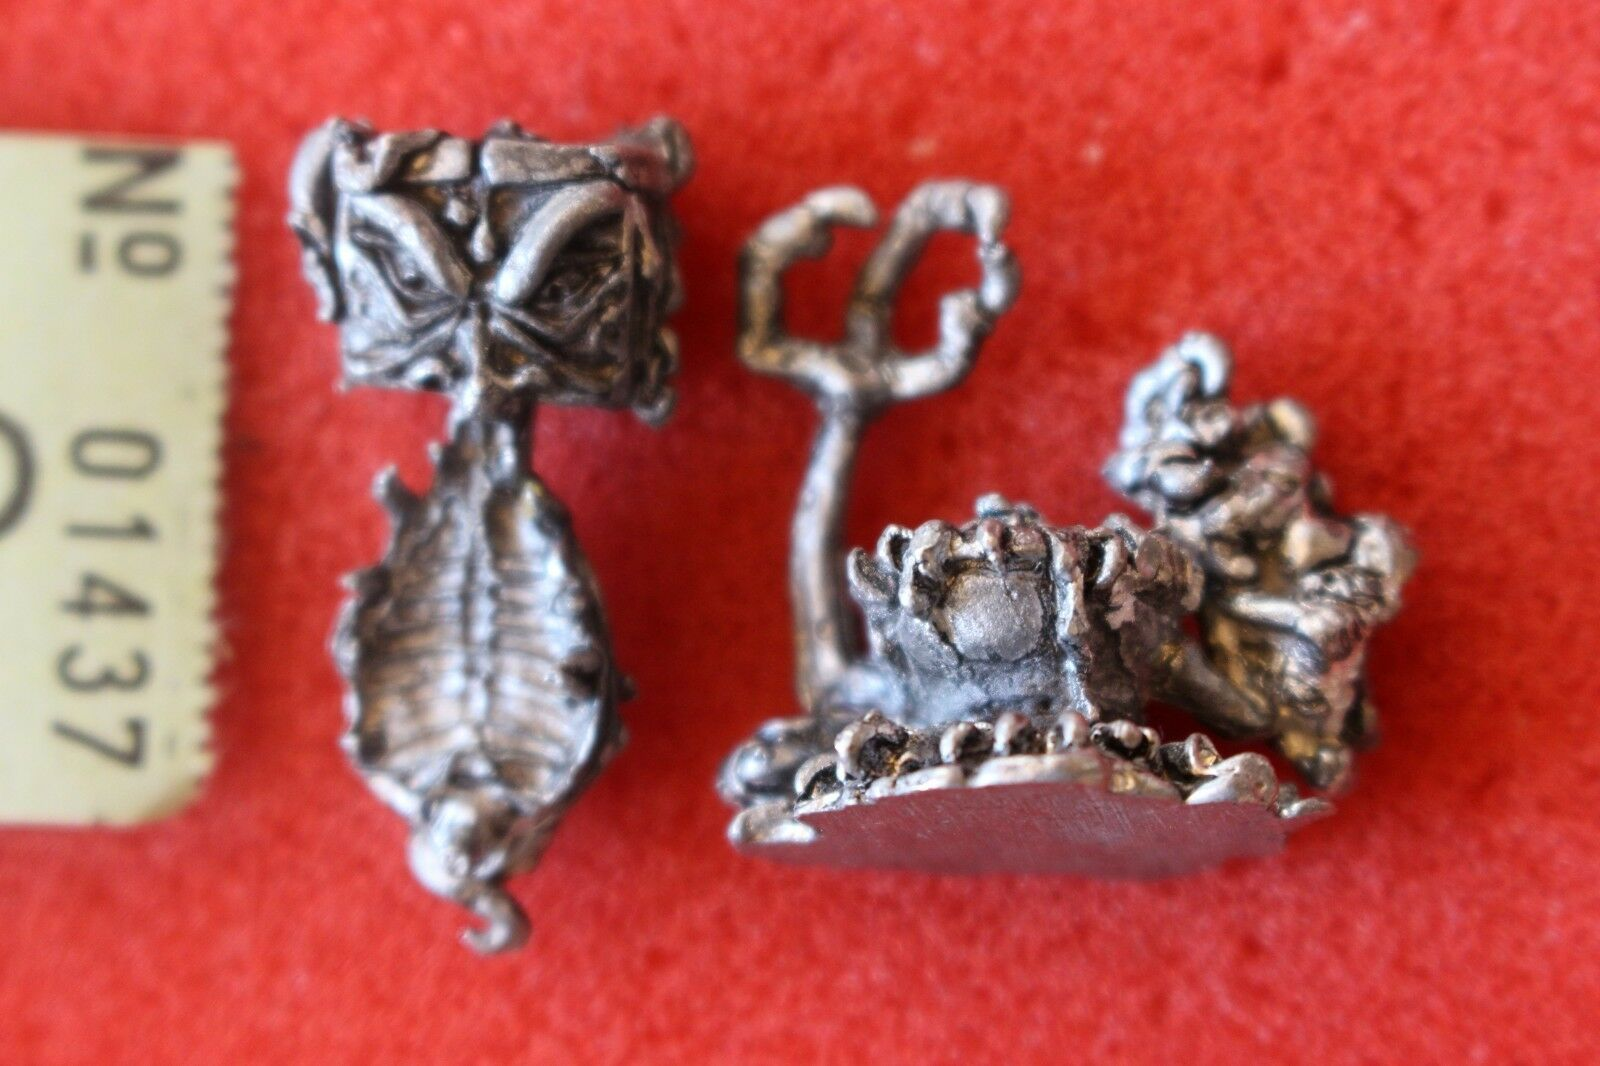 Citadel Games Workshop Limited Edition Warhammer Dwarf LE17 Chaos Toilet OOP GW